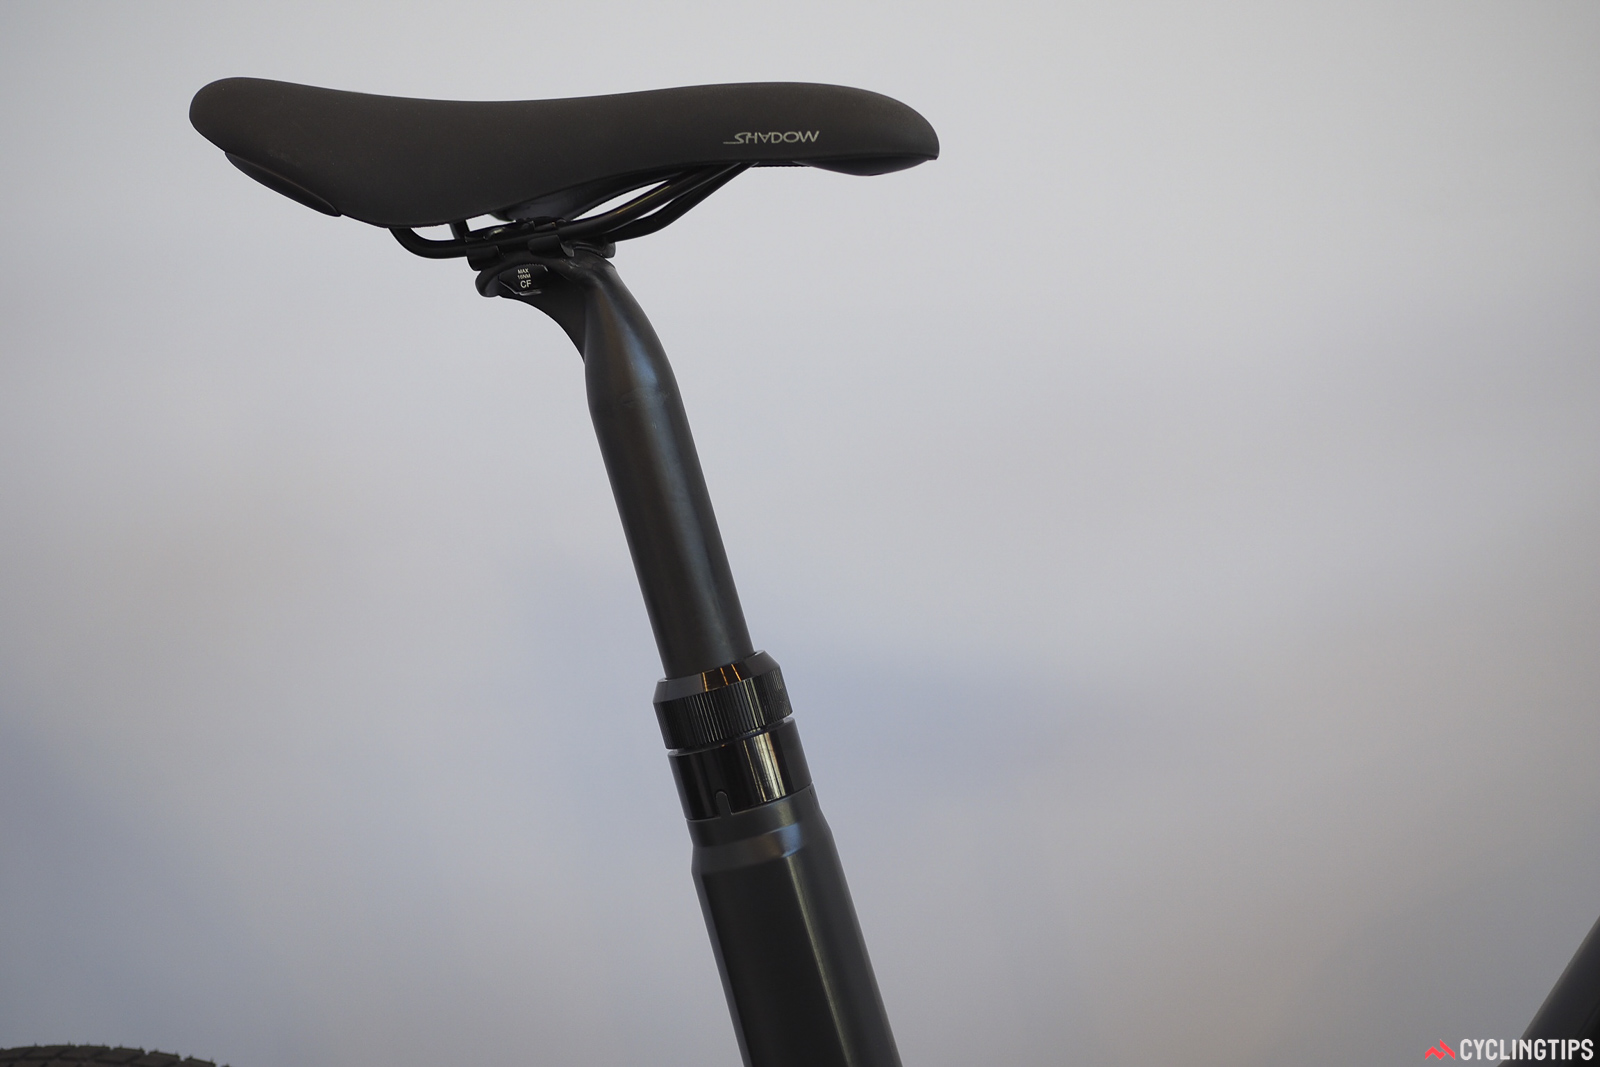 There are plenty of neat details, such as the collet-style seatpost clamp that doesn't require any post-molding slotting or cutting of the seat tube. Photo: James Huang.